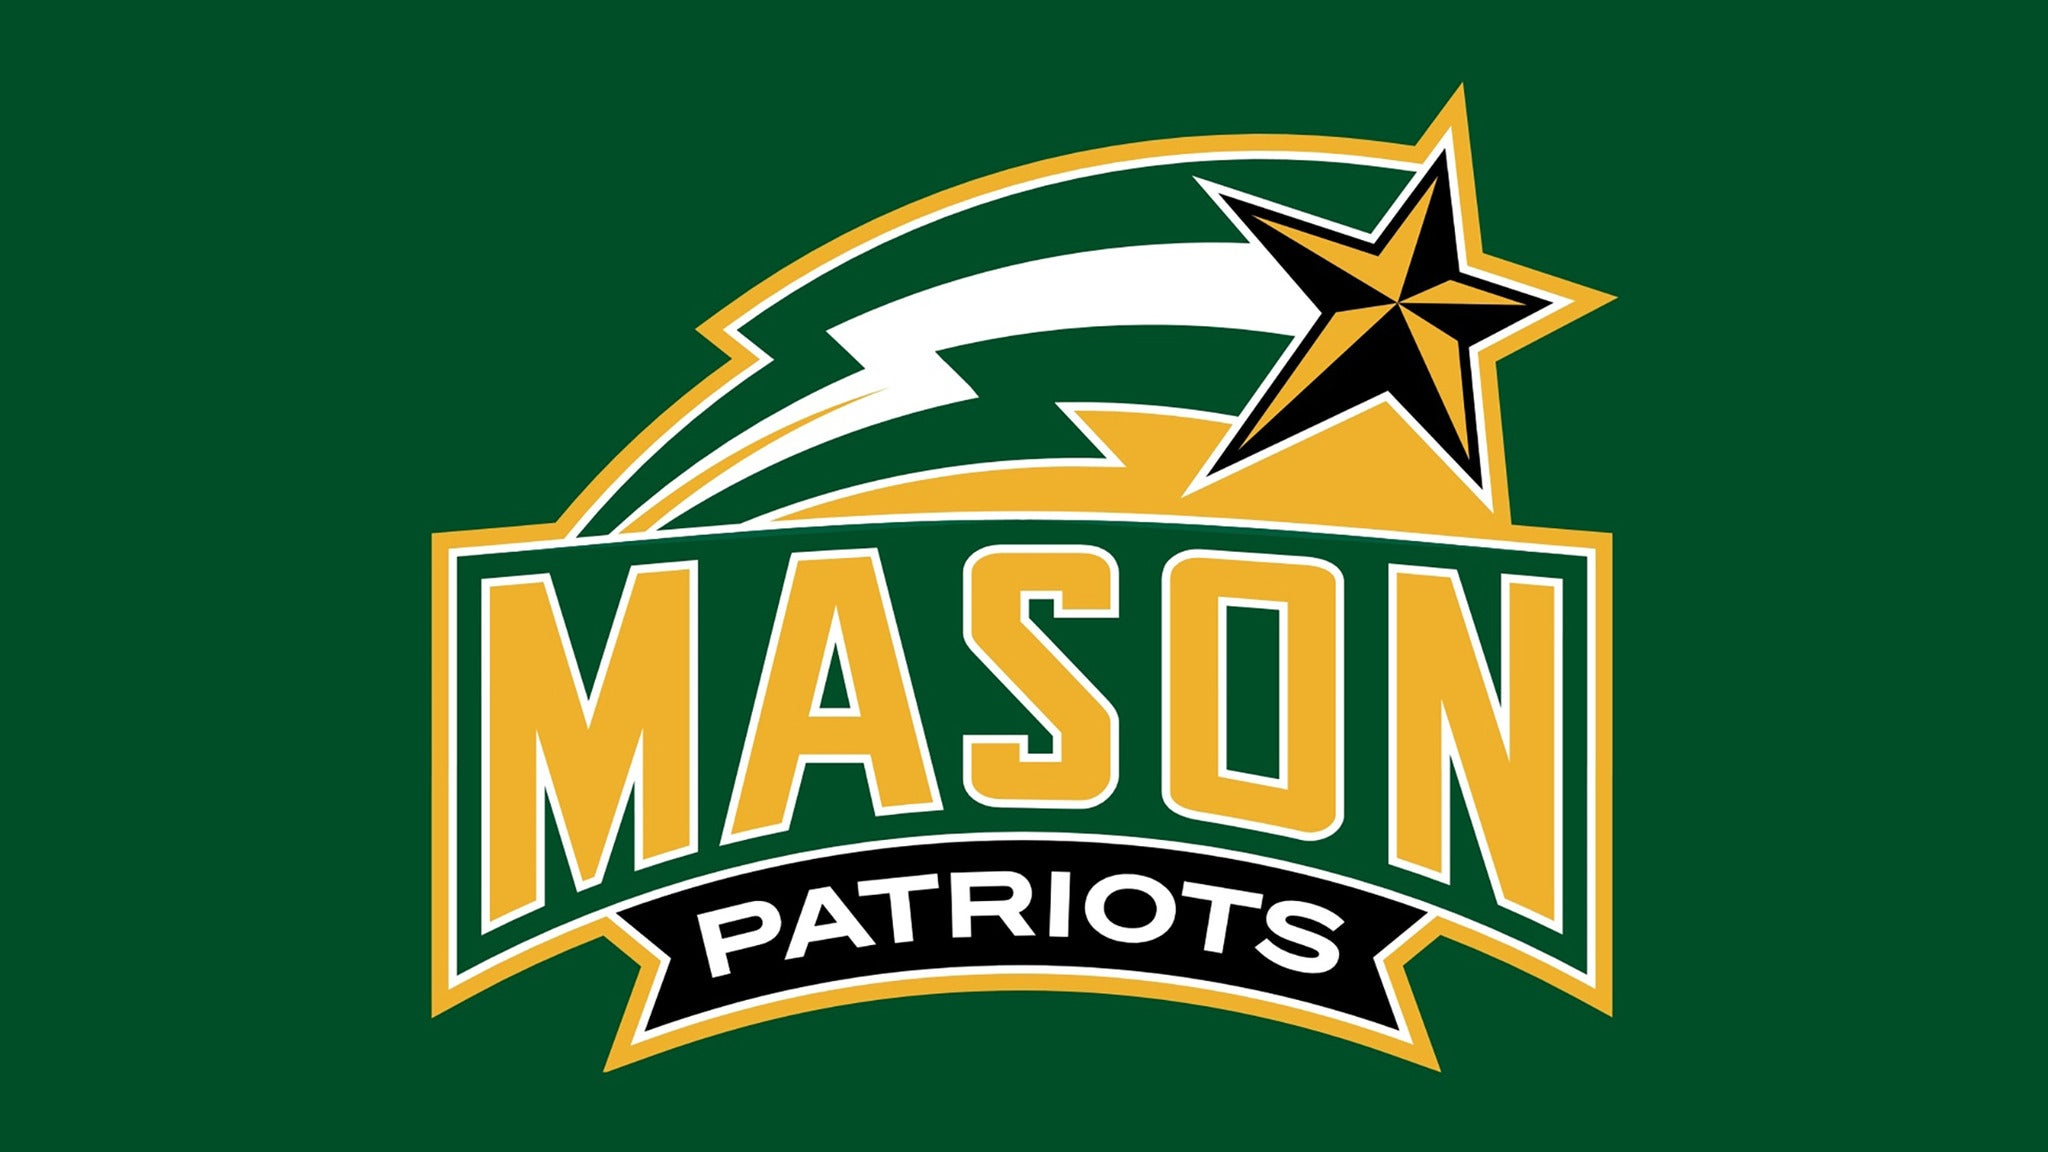 George Mason University Patriots Mens Basketball vs. Georgia Southern Eagles Mens Basketball